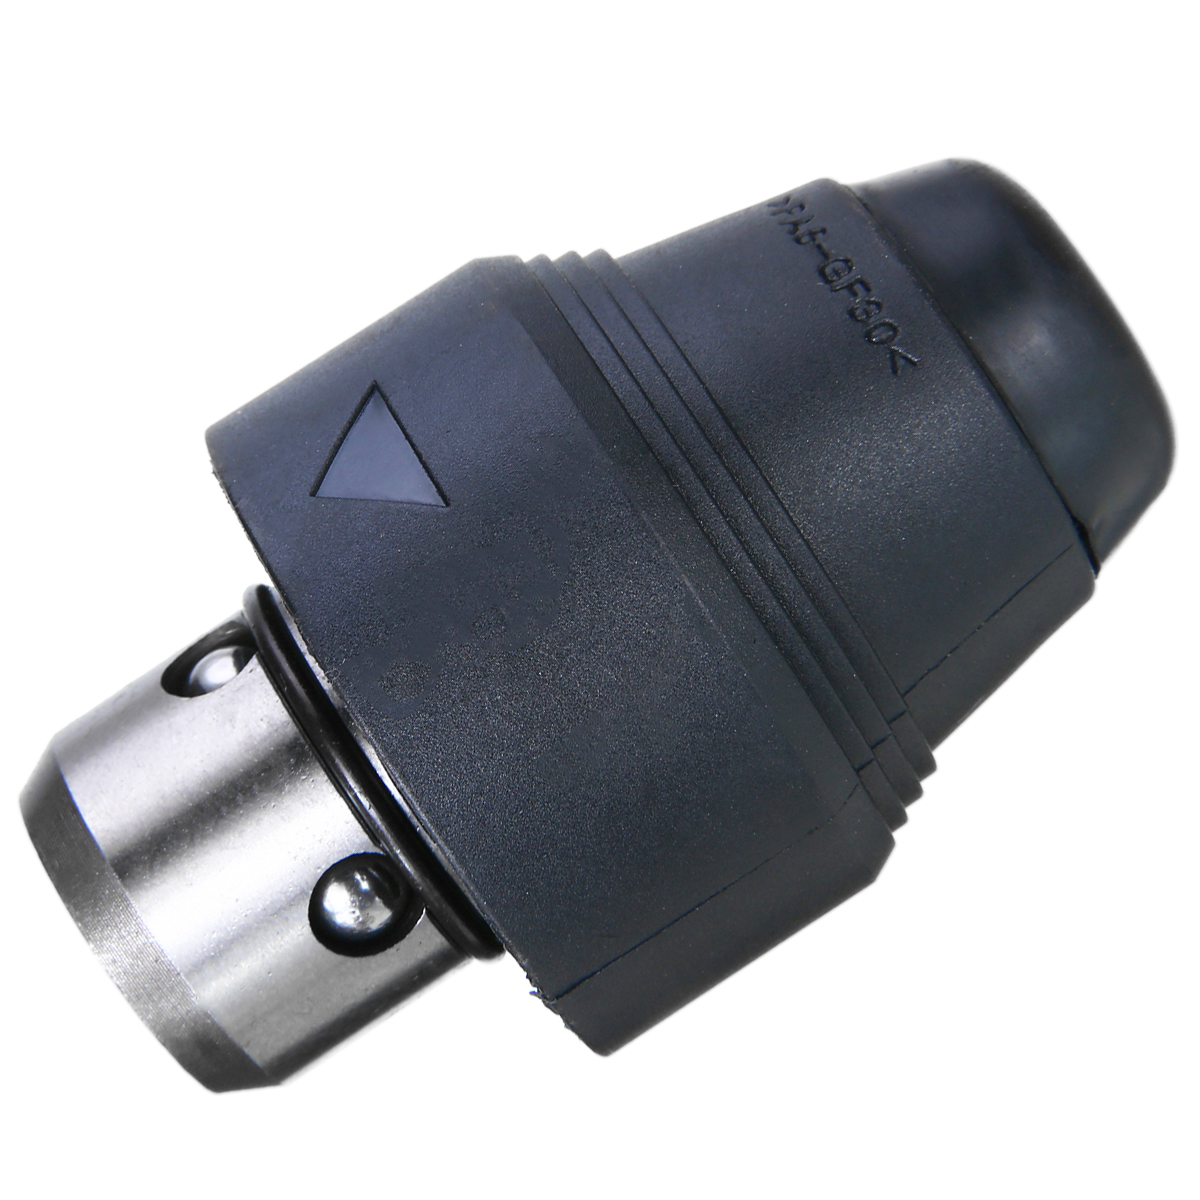 1pc New Black Electric Drill Chuck SDS Plus Adapter Shank Replacement for Bosch GBH 2-26 DFR GBH 4-32 DFR1pc New Black Electric Drill Chuck SDS Plus Adapter Shank Replacement for Bosch GBH 2-26 DFR GBH 4-32 DFR